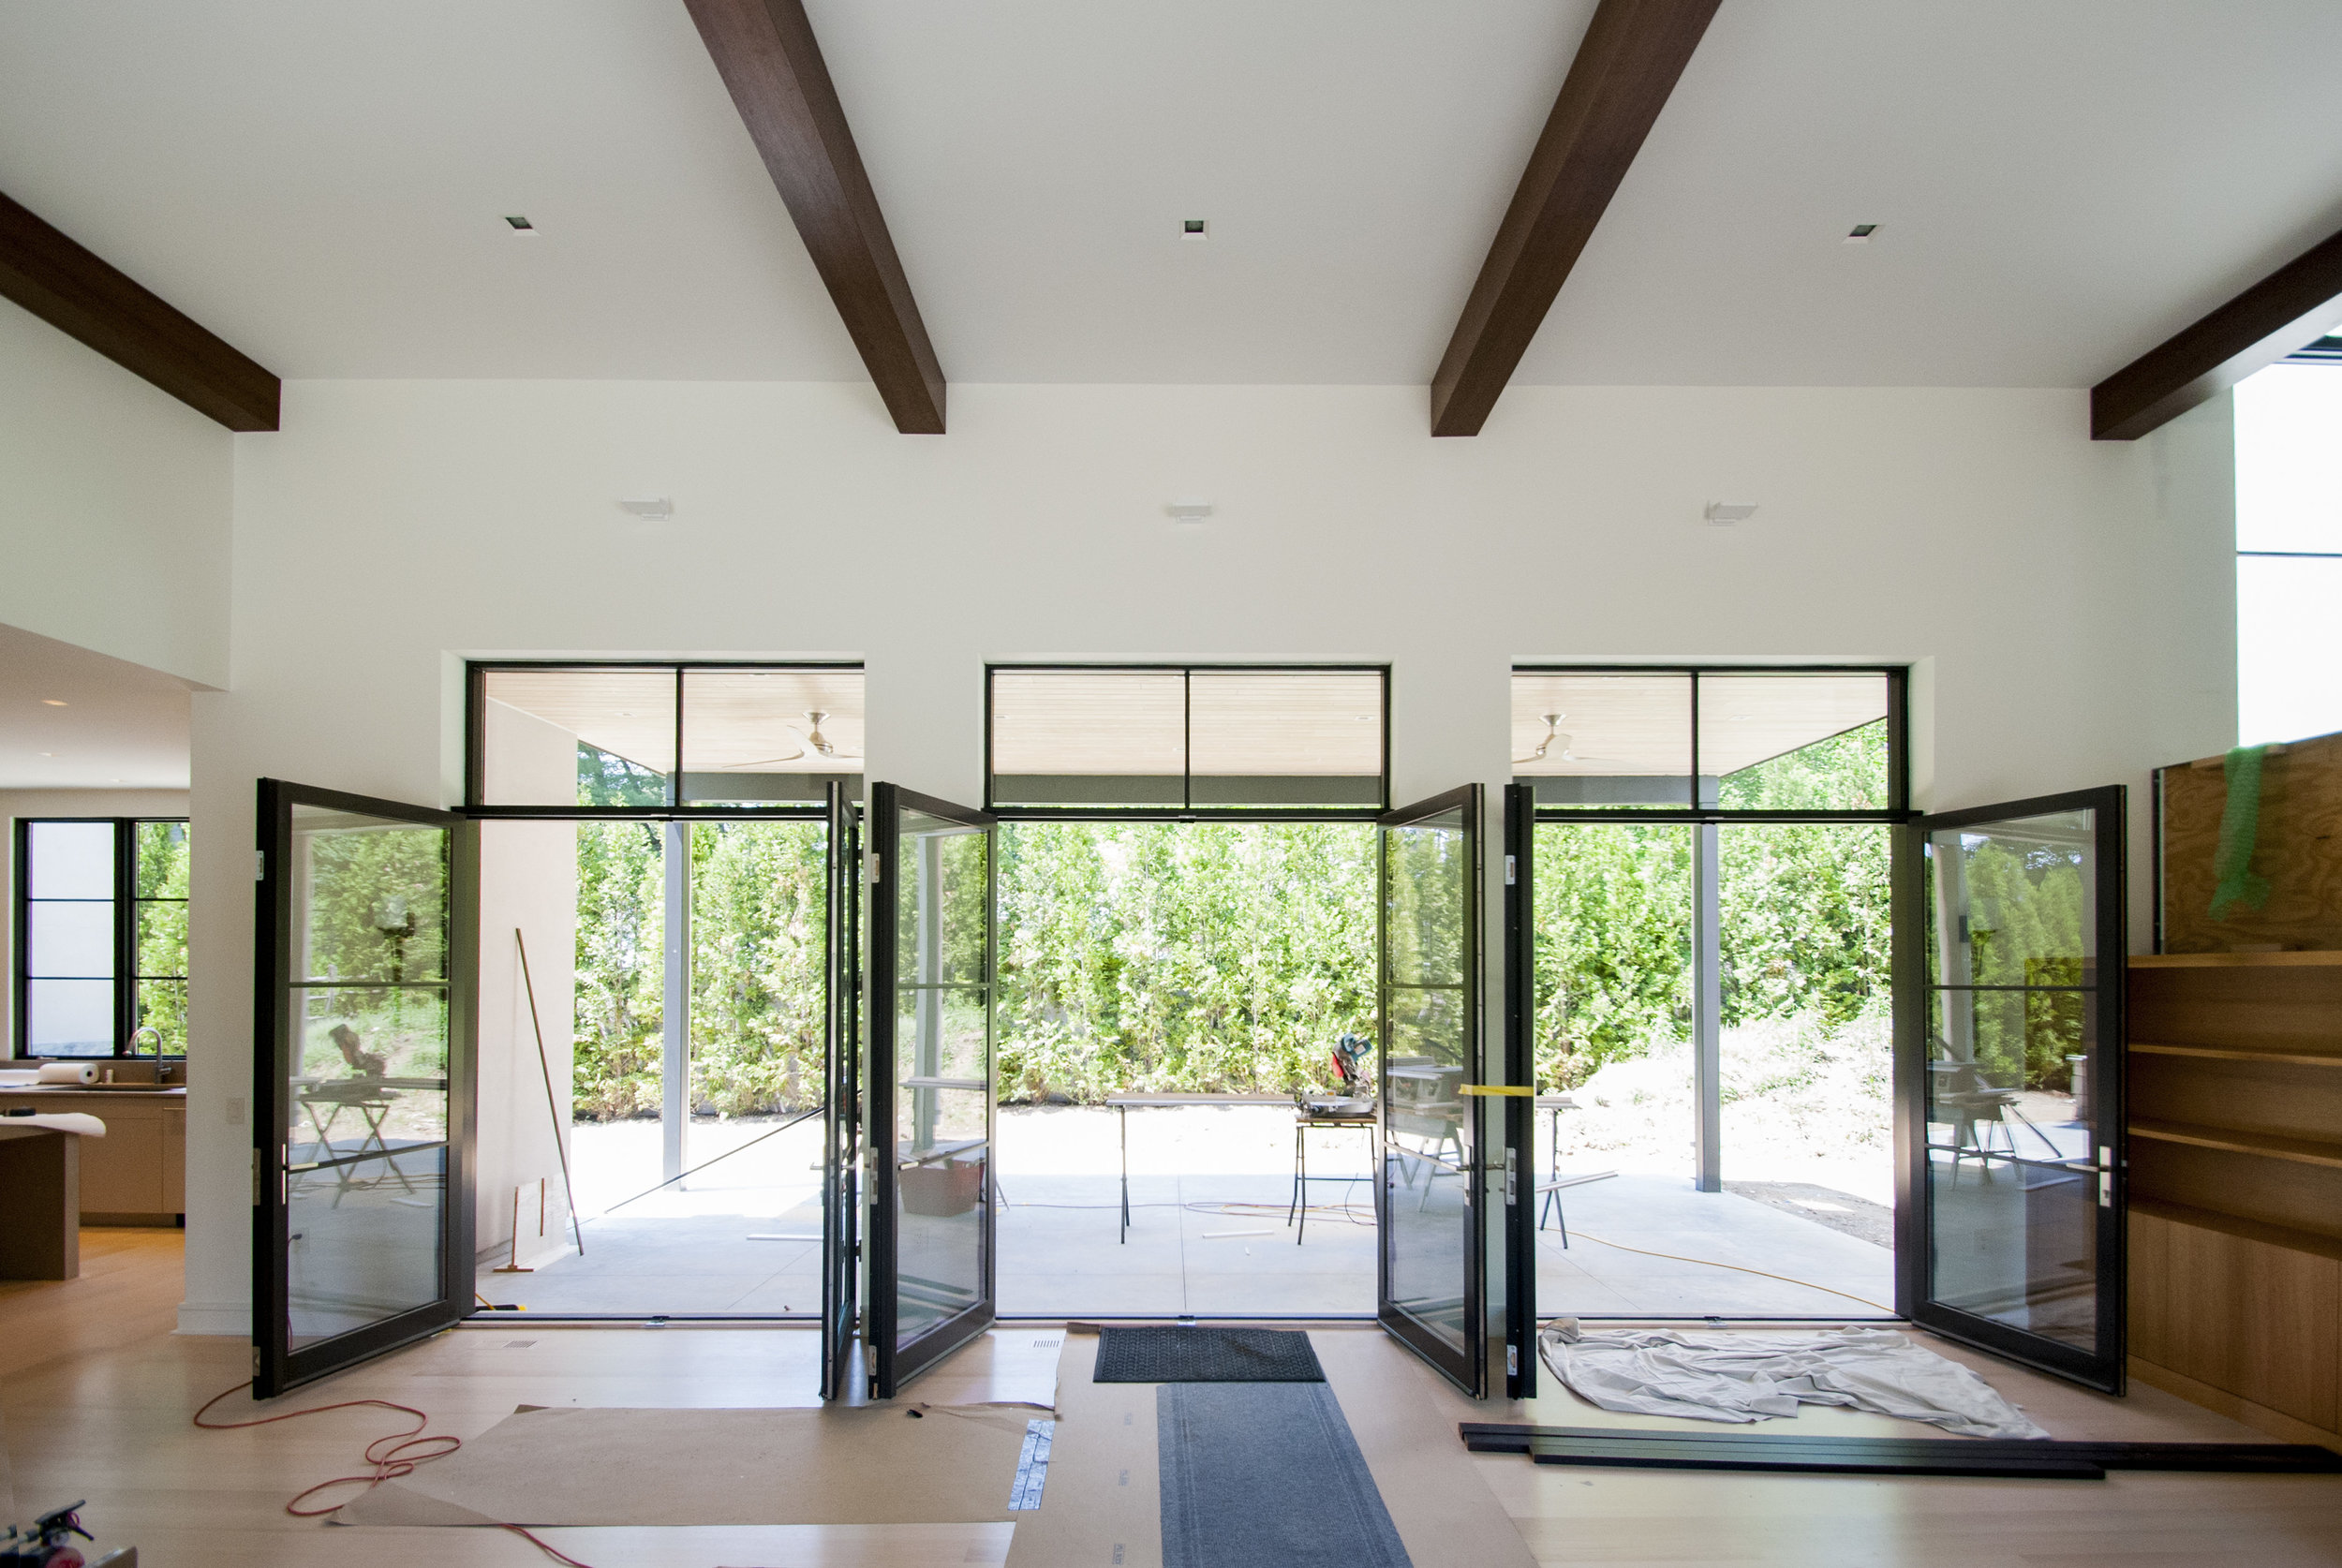 The space makes use of 3 large doors that lead out onto the rear patio.